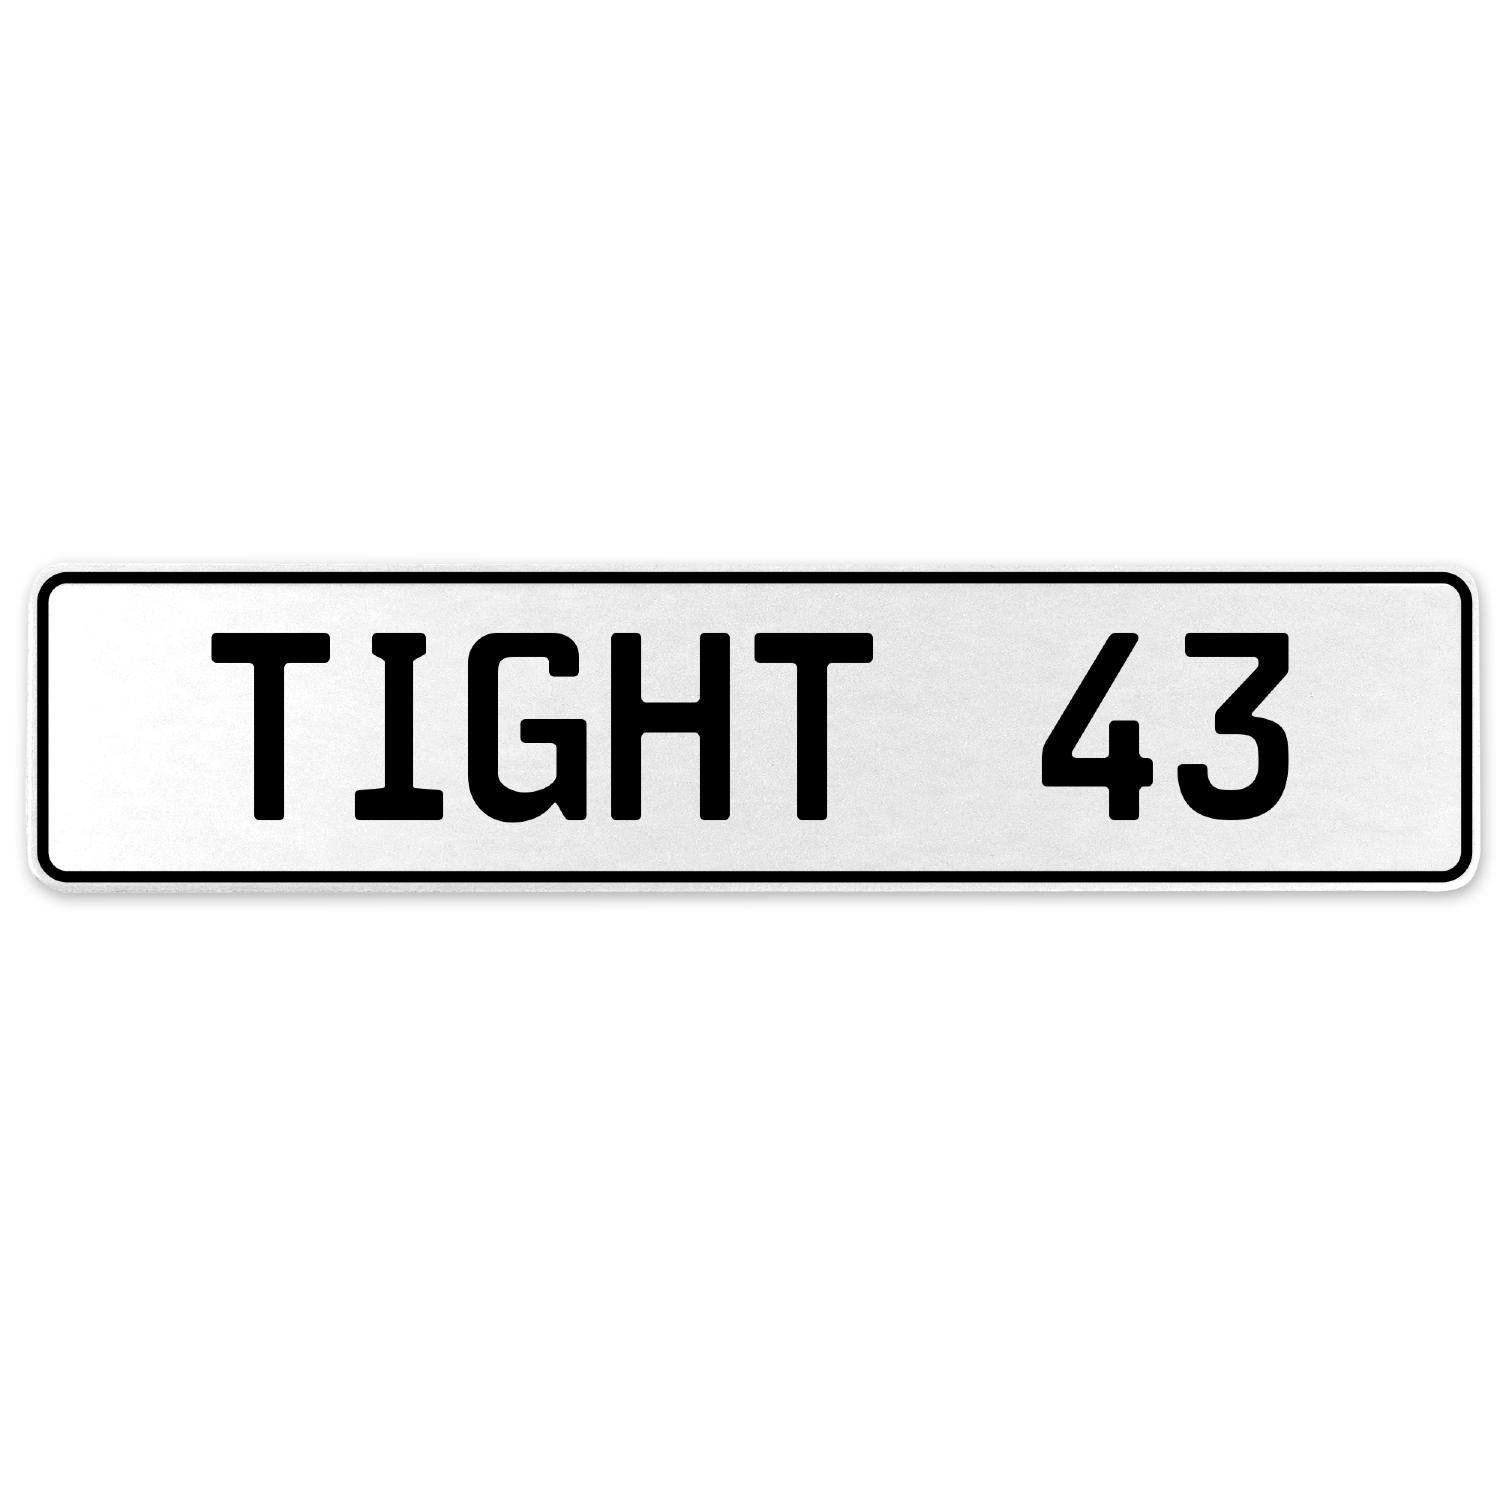 Vintage Parts 554739 Tight 43 White Stamped Aluminum European License Plate